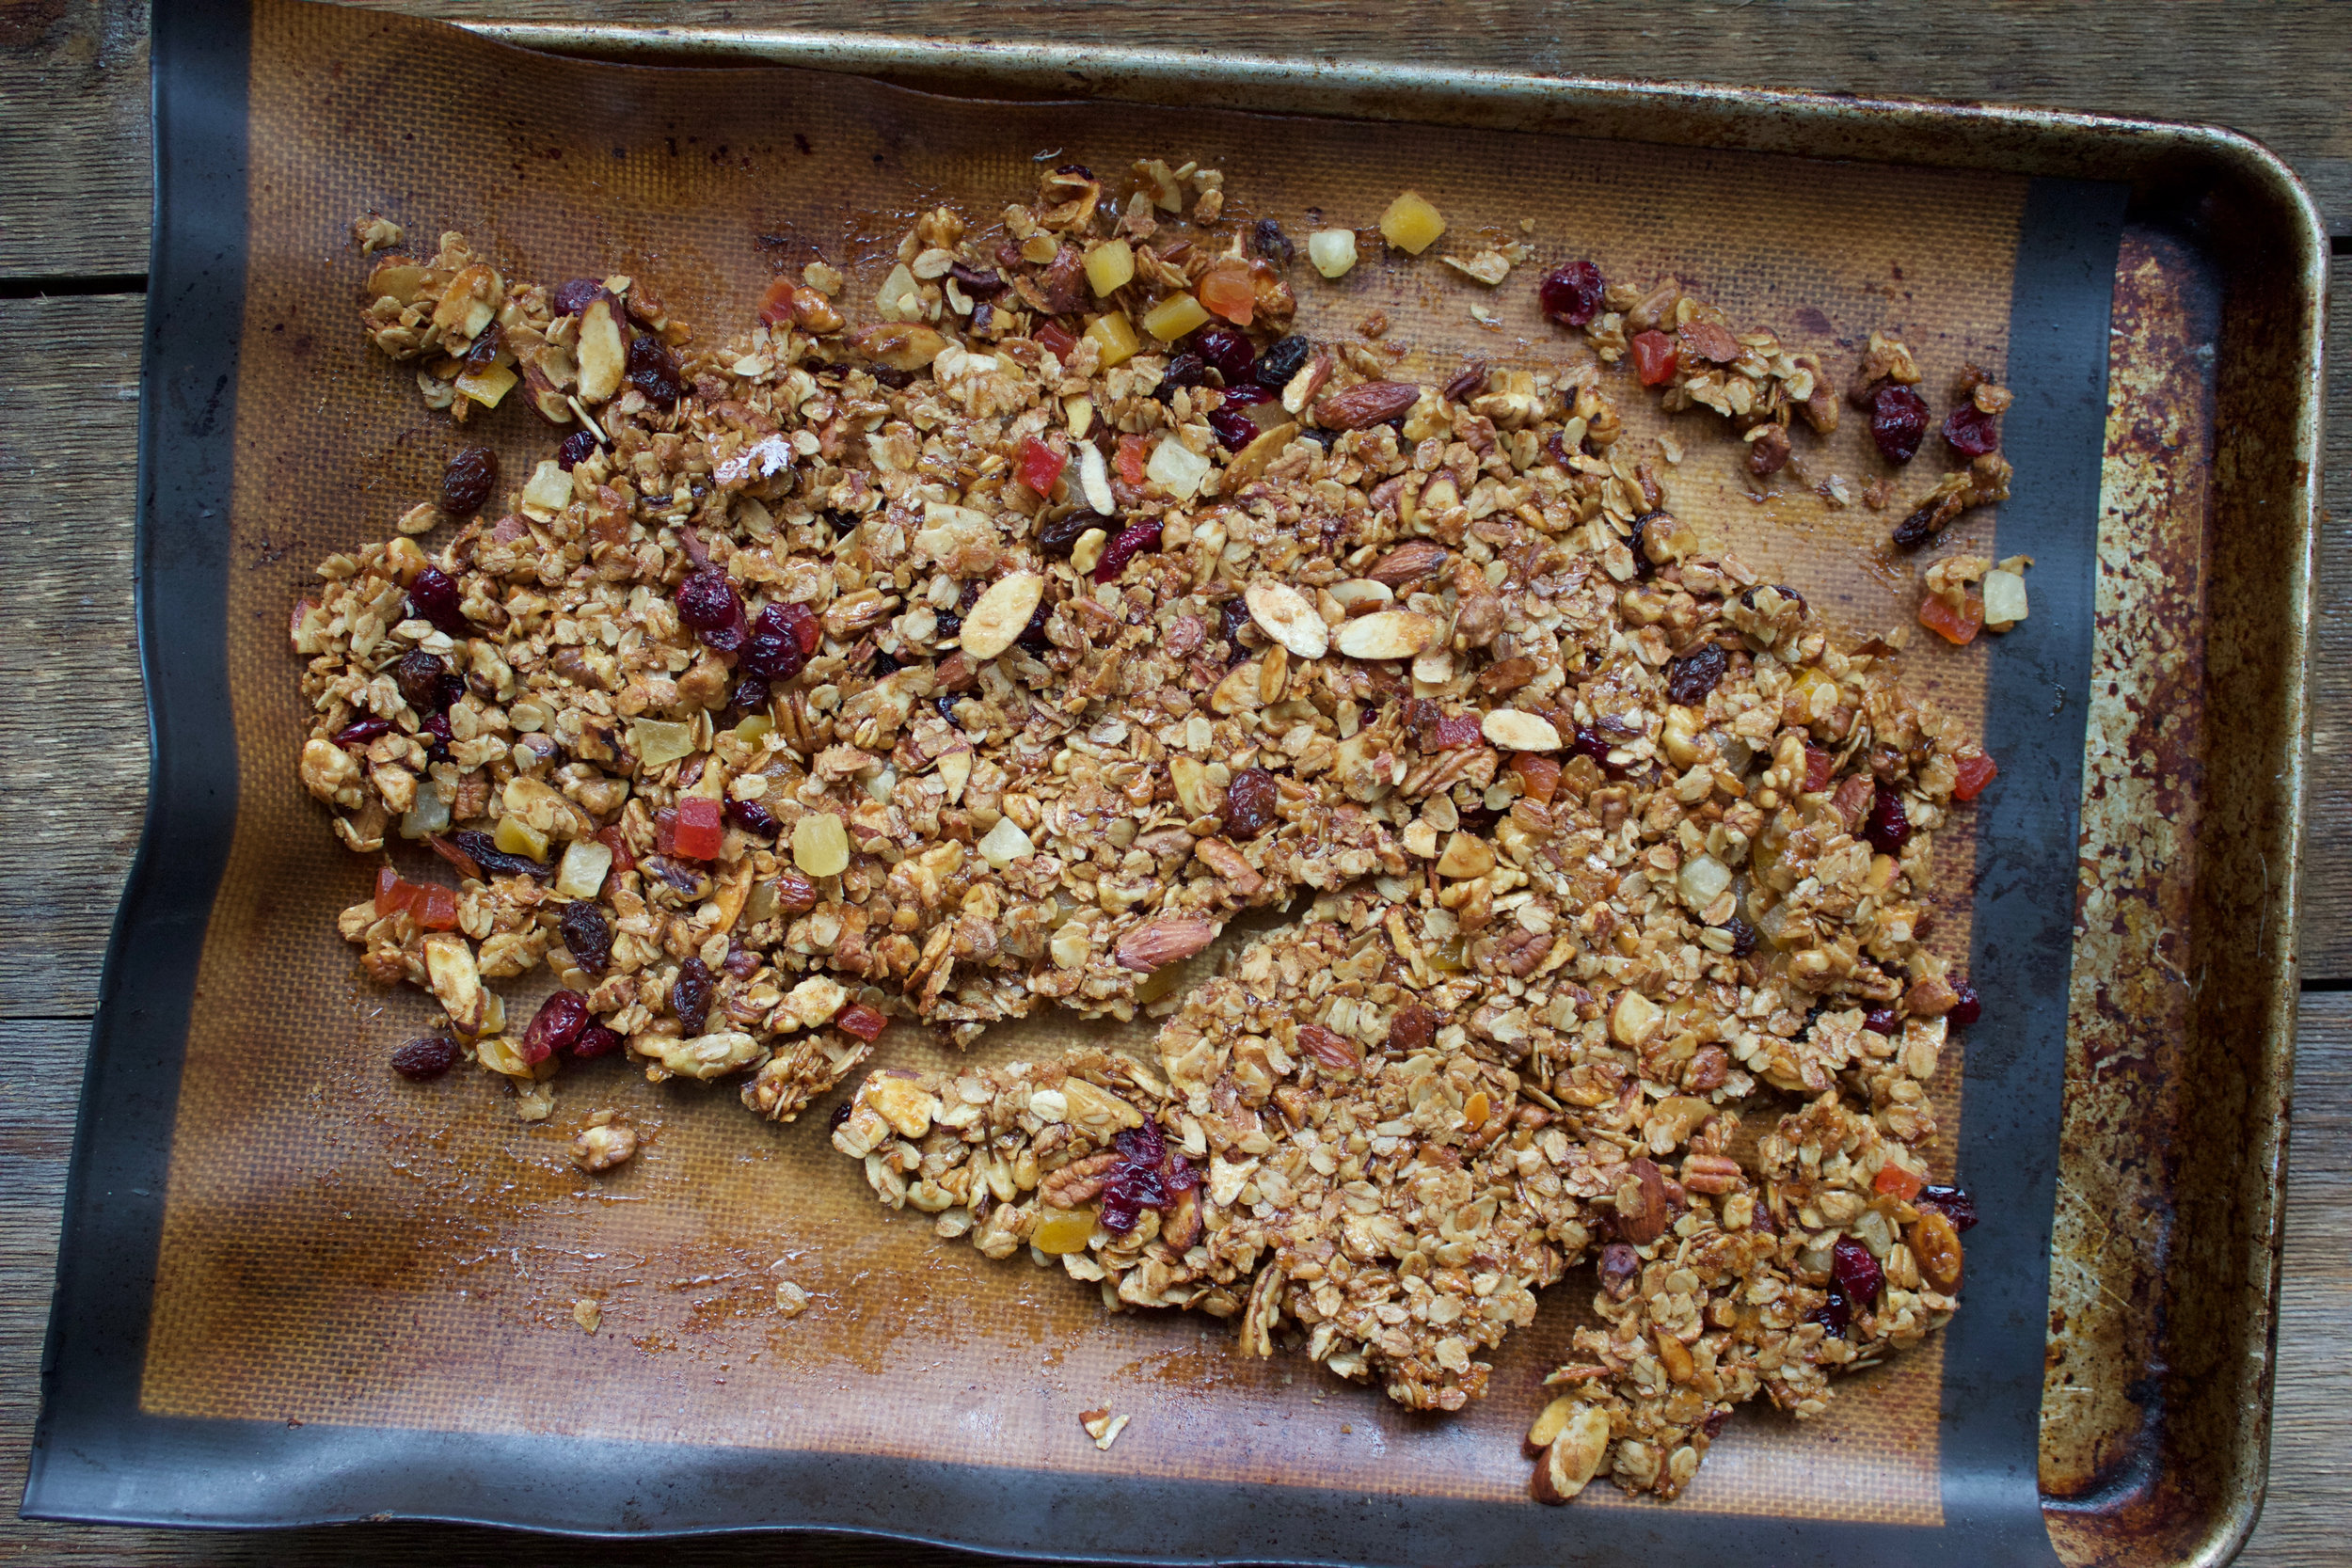 granola after the bake